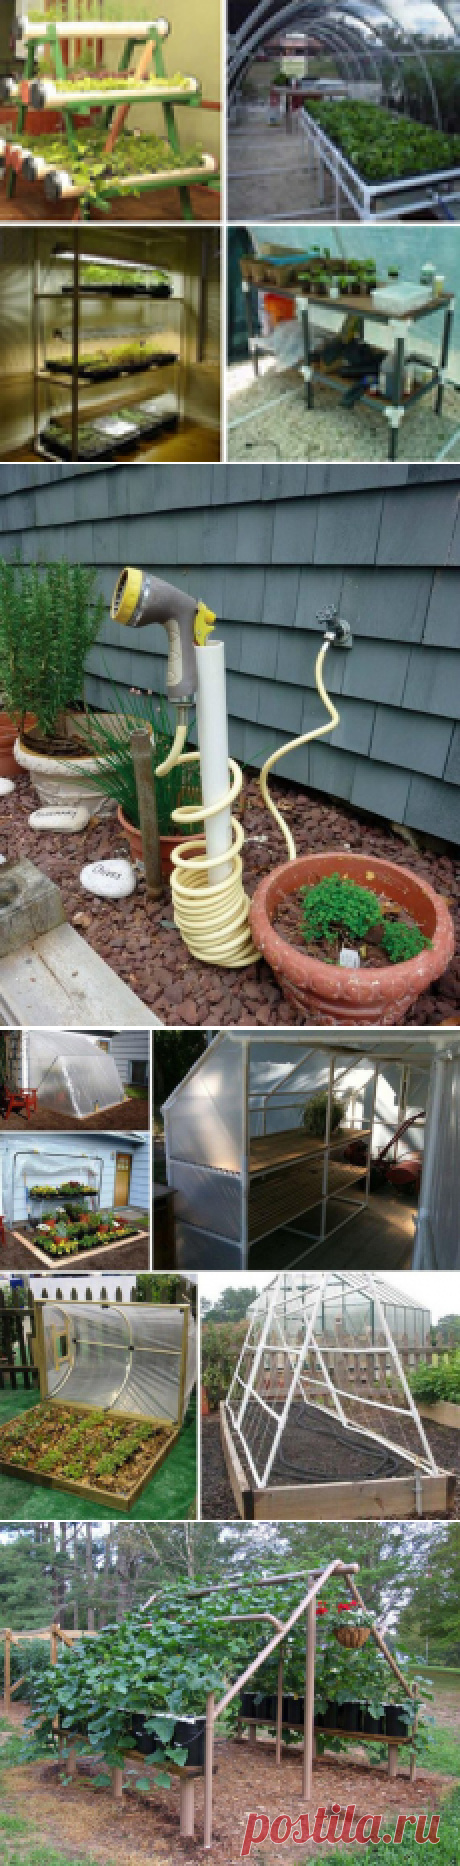 Use of PVC pipes for giving, a garden and a kitchen garden.